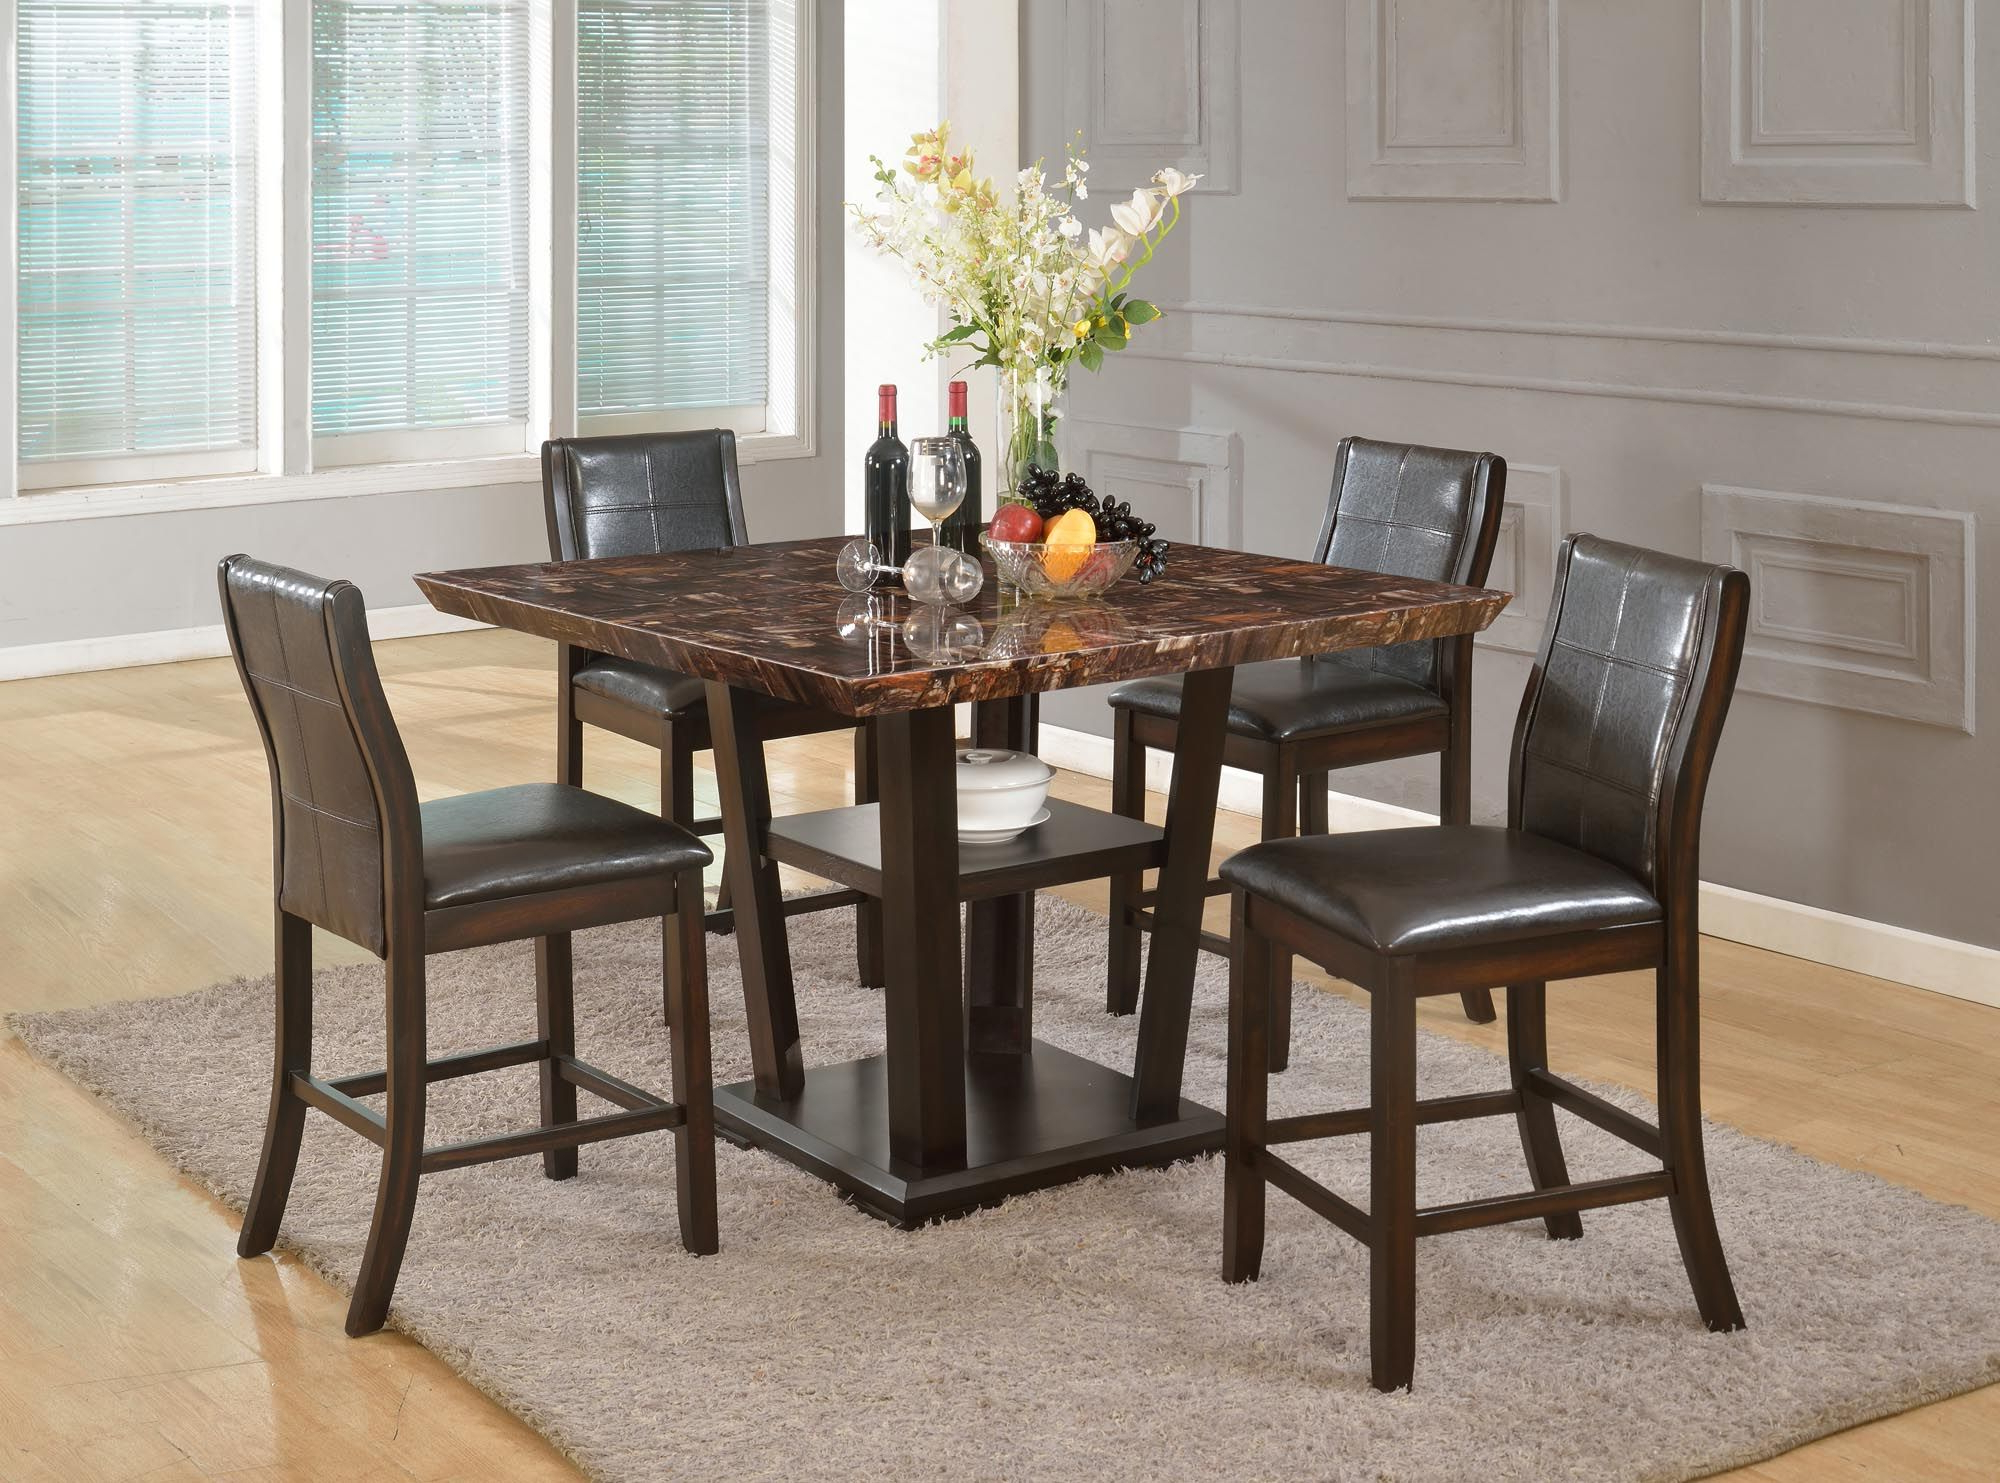 Faux Marble Finish Metal Contemporary Dining Tables Pertaining To Favorite 5 Piece Counter Height Table And 4 Chairs Faux Marble Top In (View 8 of 30)